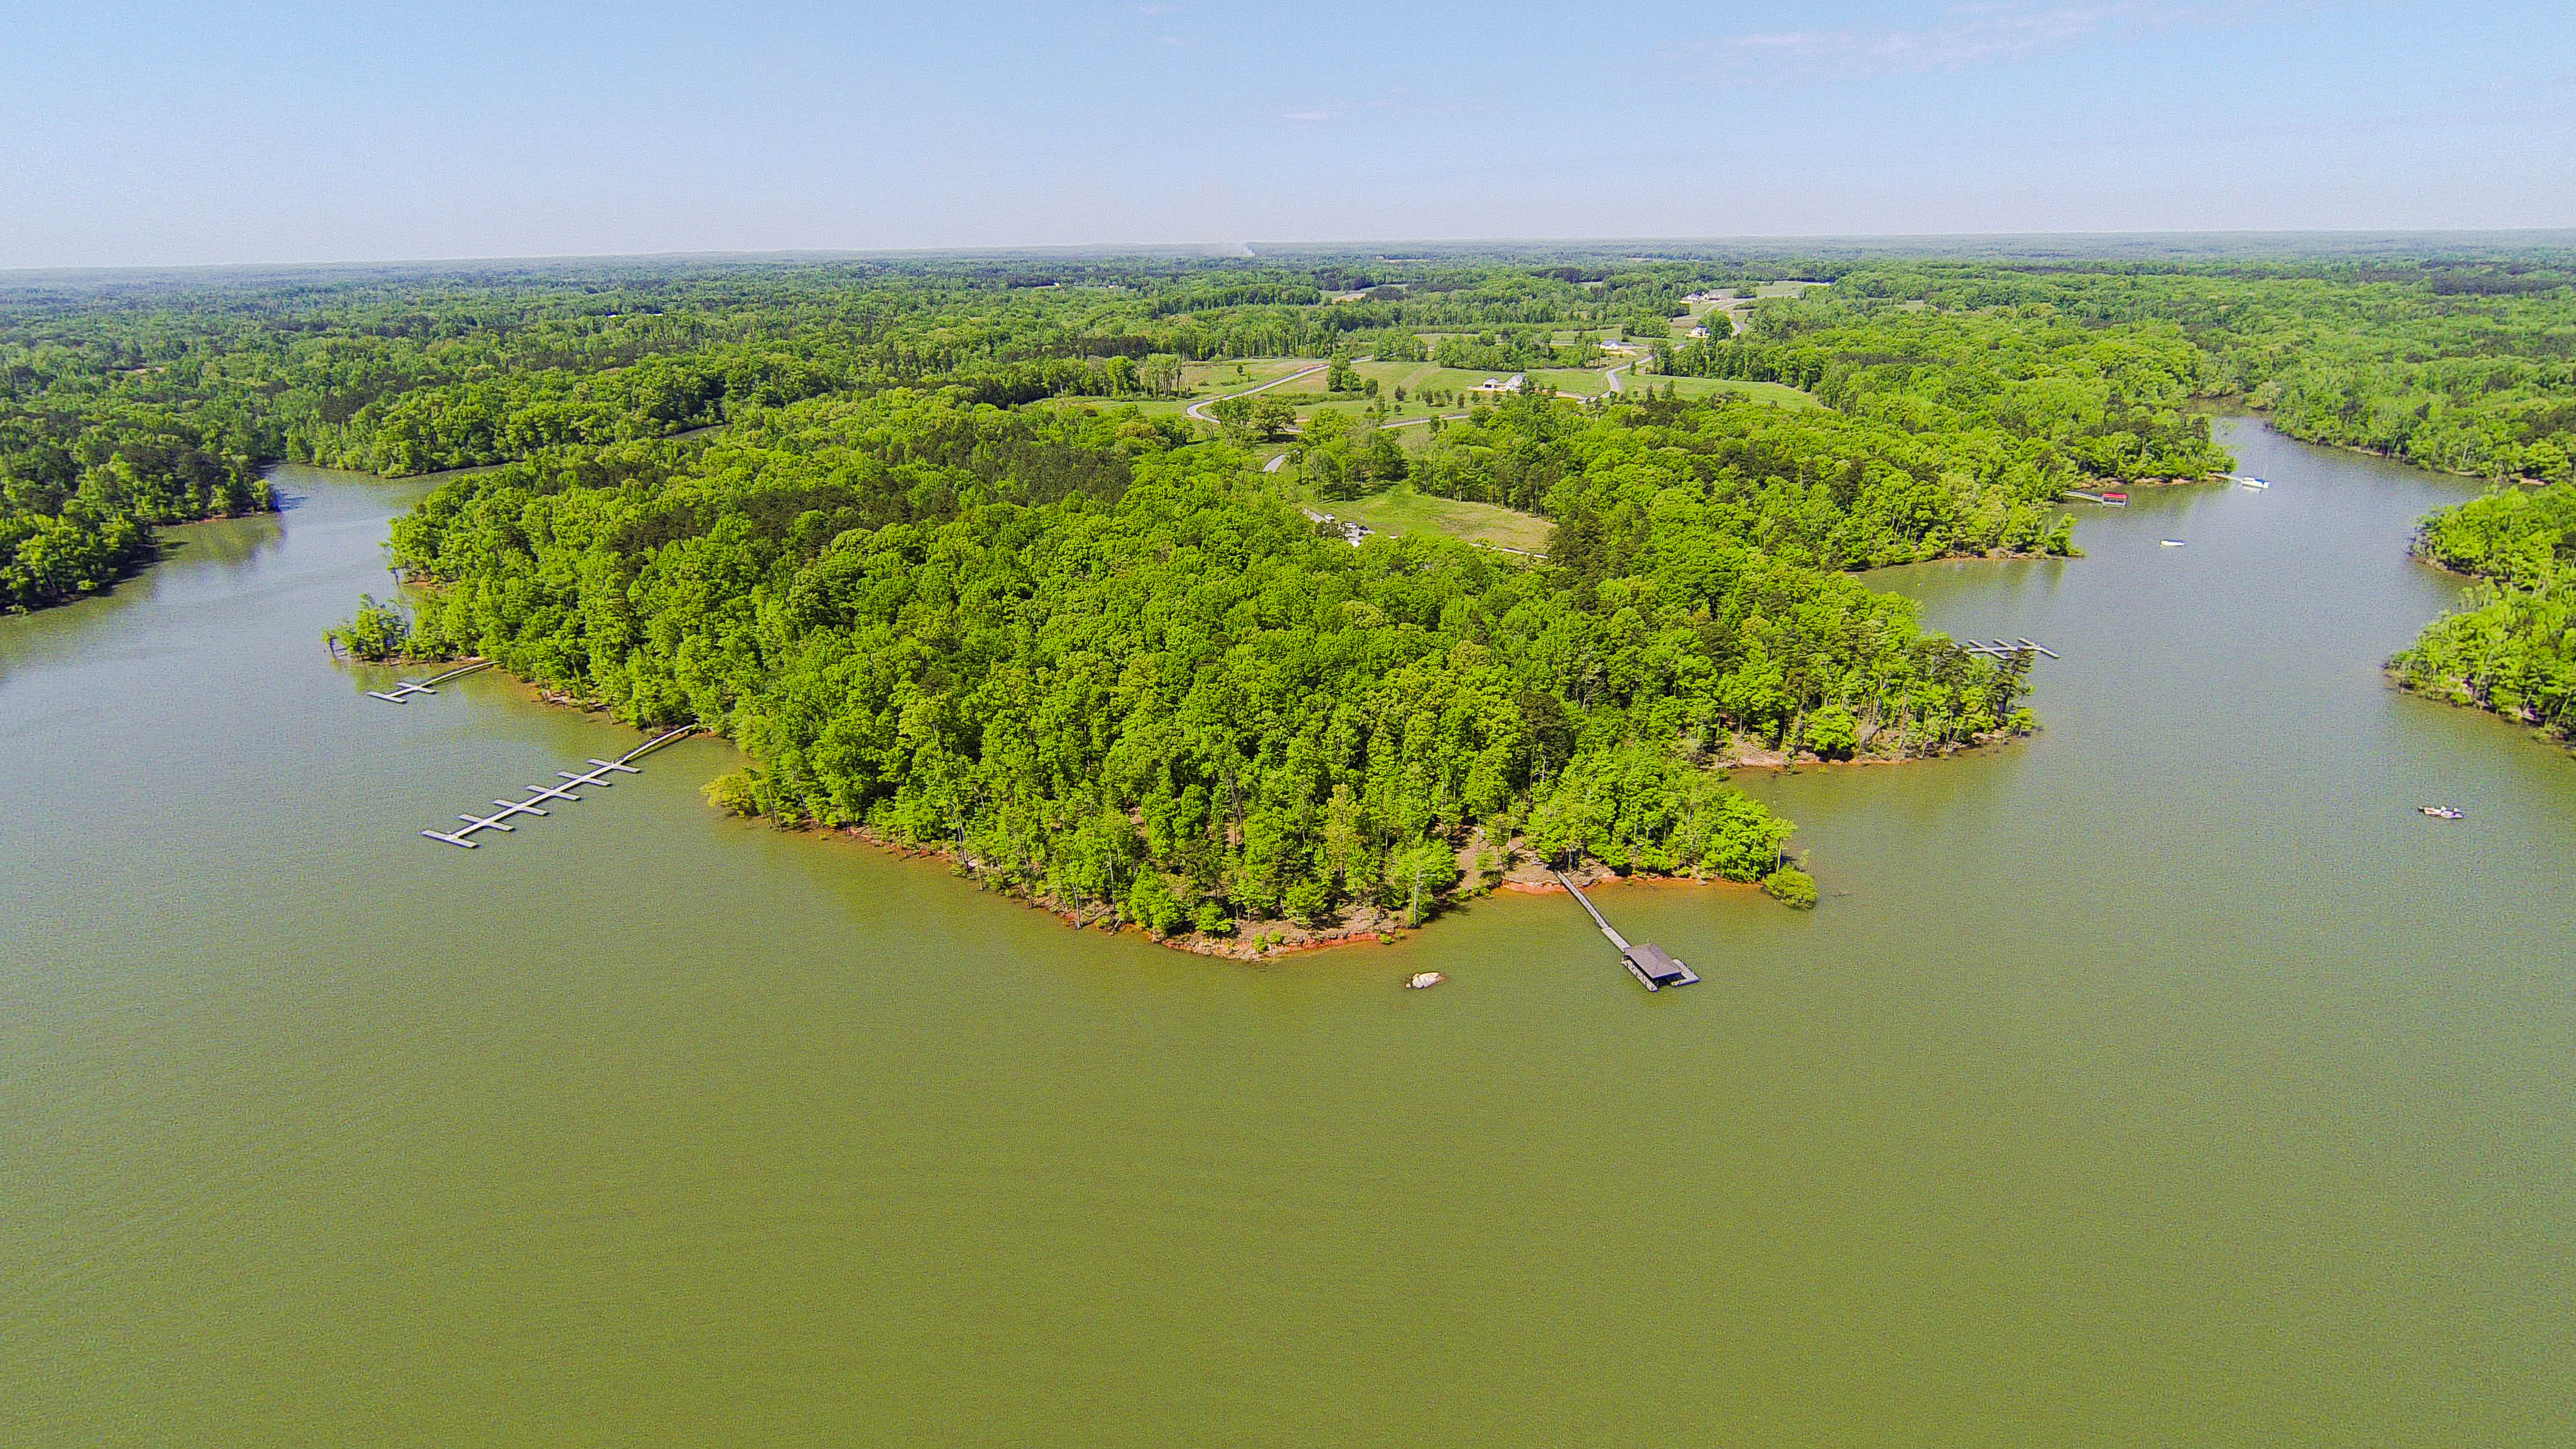 peninsula at kerr lake (c)Merle Braley 2014-3